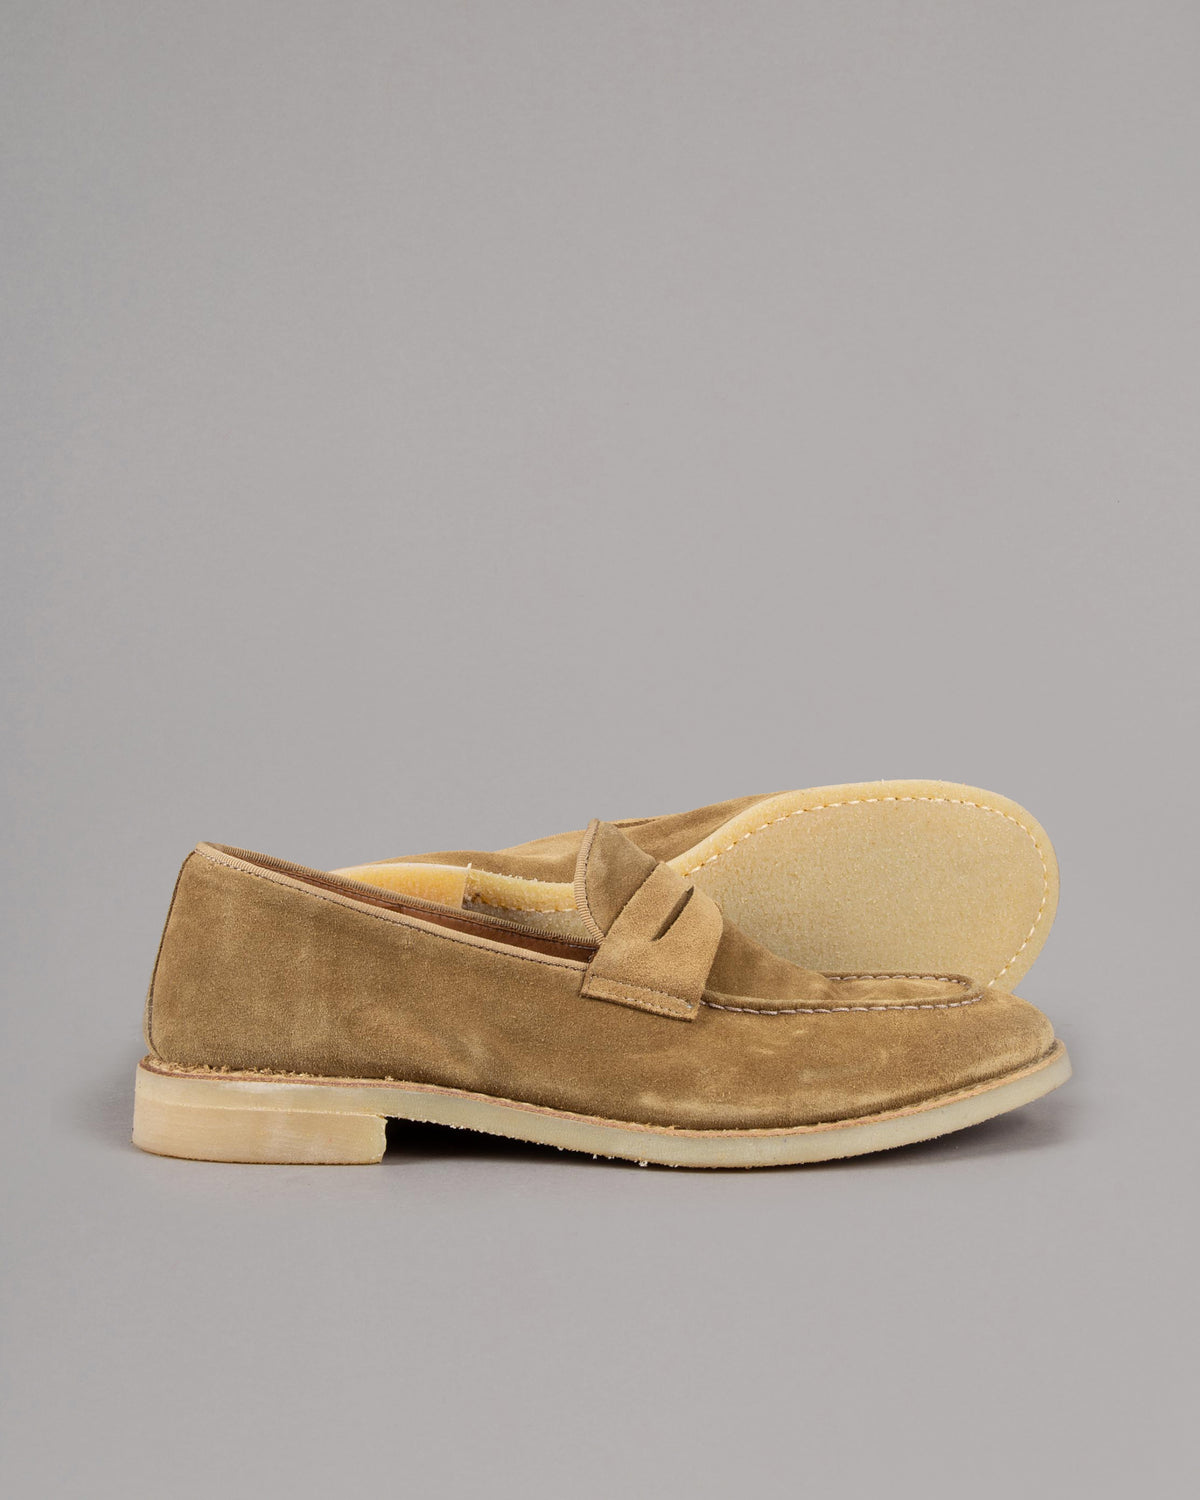 'Zen 53022' Wildleder-Loafer